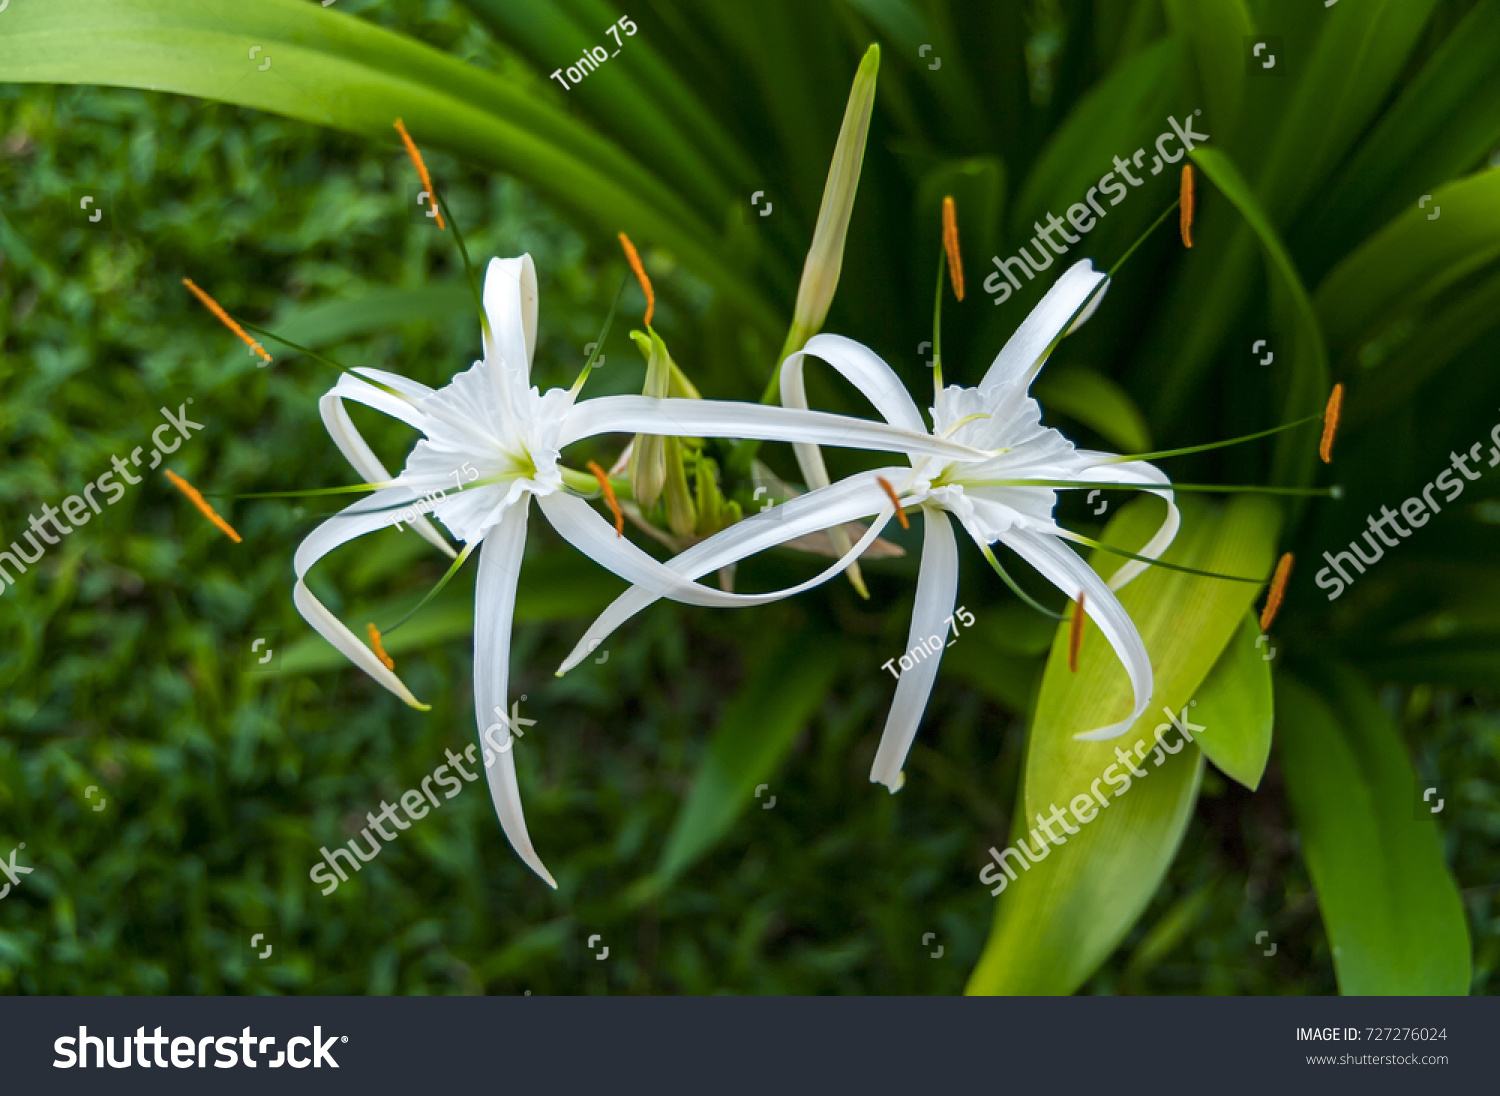 Beautiful whiter spider lily flowers stock photo royalty free beautiful whiter spider lily flowers stock photo royalty free 727276024 shutterstock izmirmasajfo